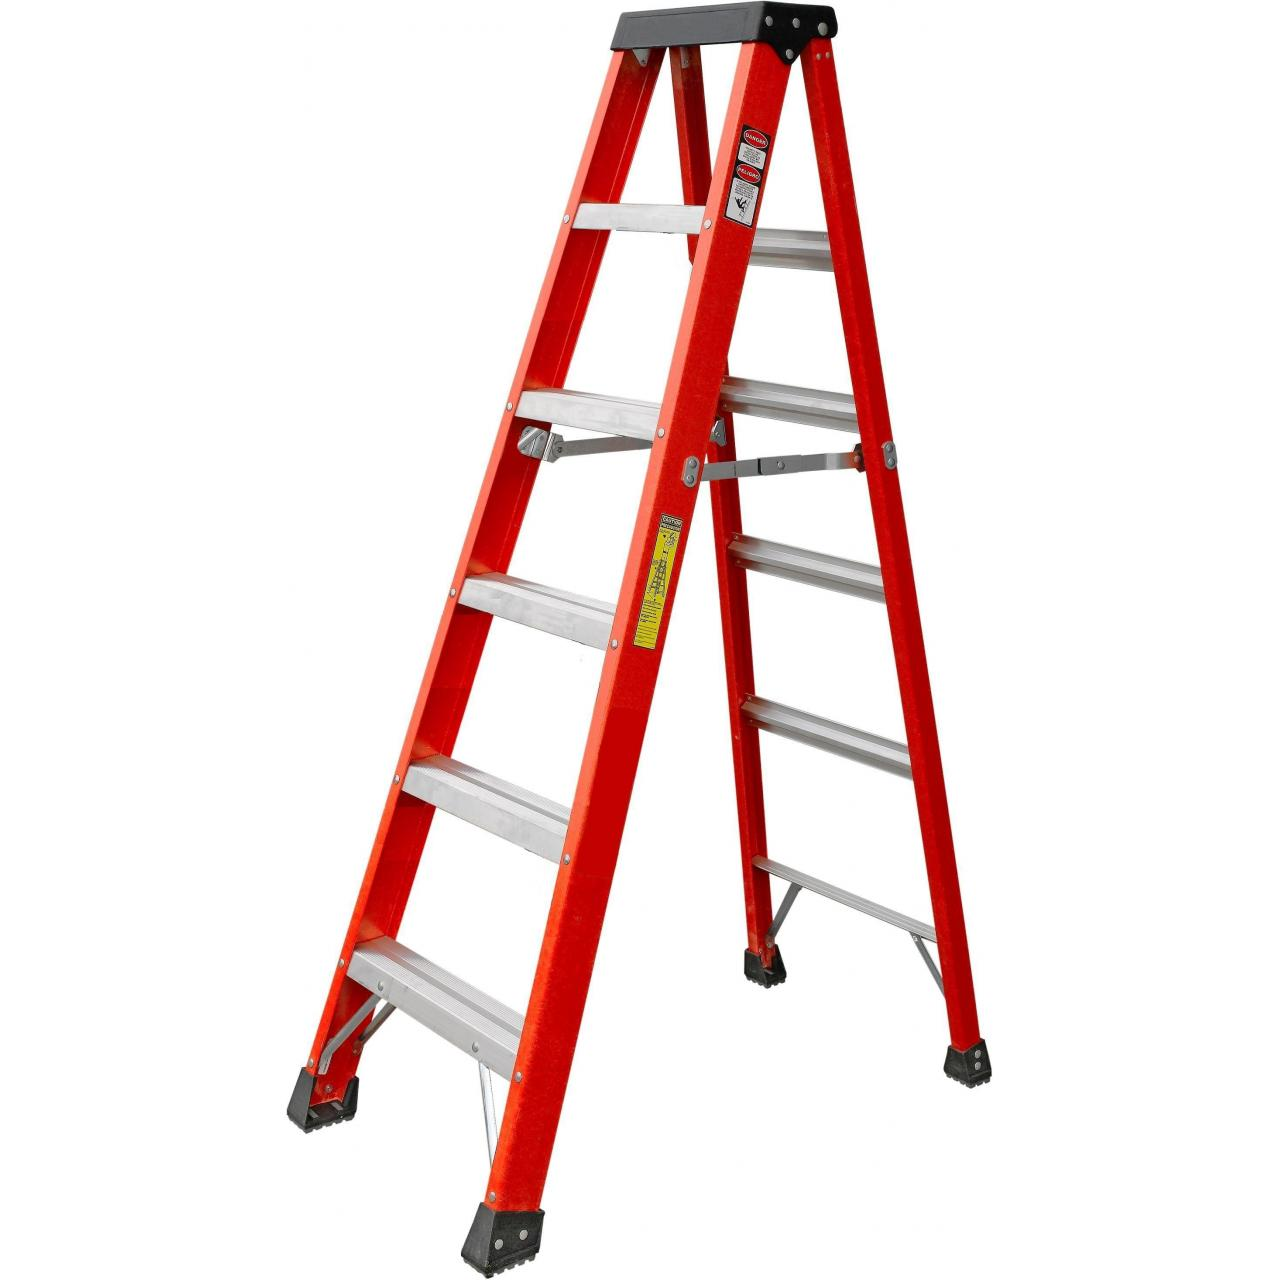 Buy cheap HEAVY DUTY FIBERGLASS STEPLADDER, GRADE 1A, 300LBS. product